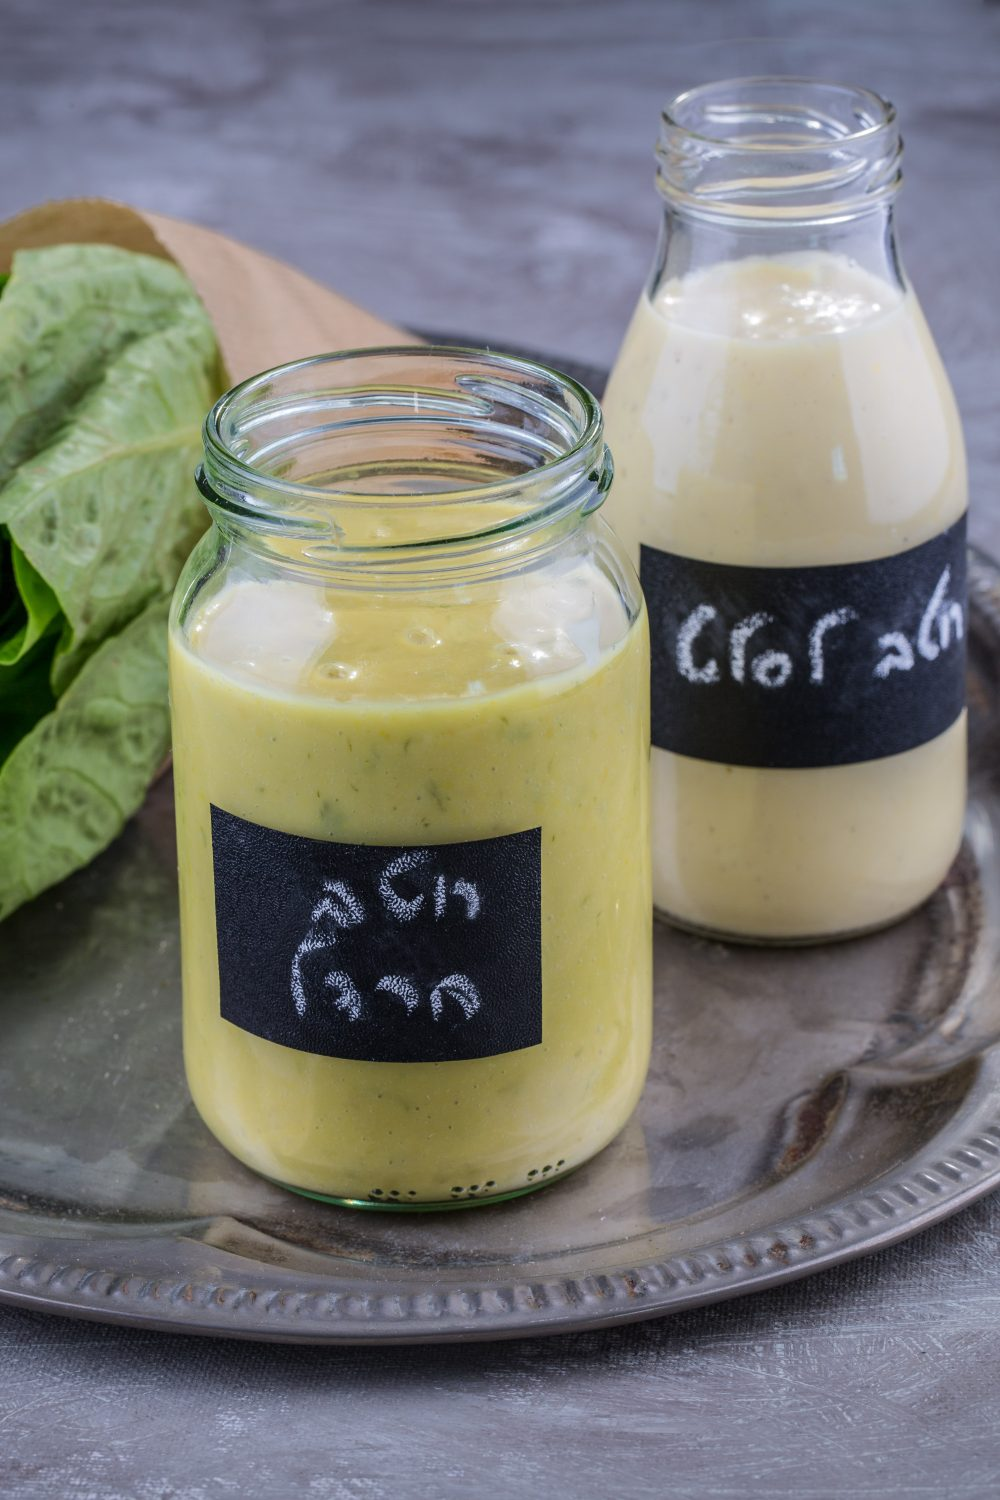 The 2 Homemade Salad Dressings That Efrat Always Keep in Her Fridge. Impromptu, fresh salads are great...but the dressing should always be there for you, ready and waiting. Here's 2 of my favorites that always are. By Efrat Libfroind